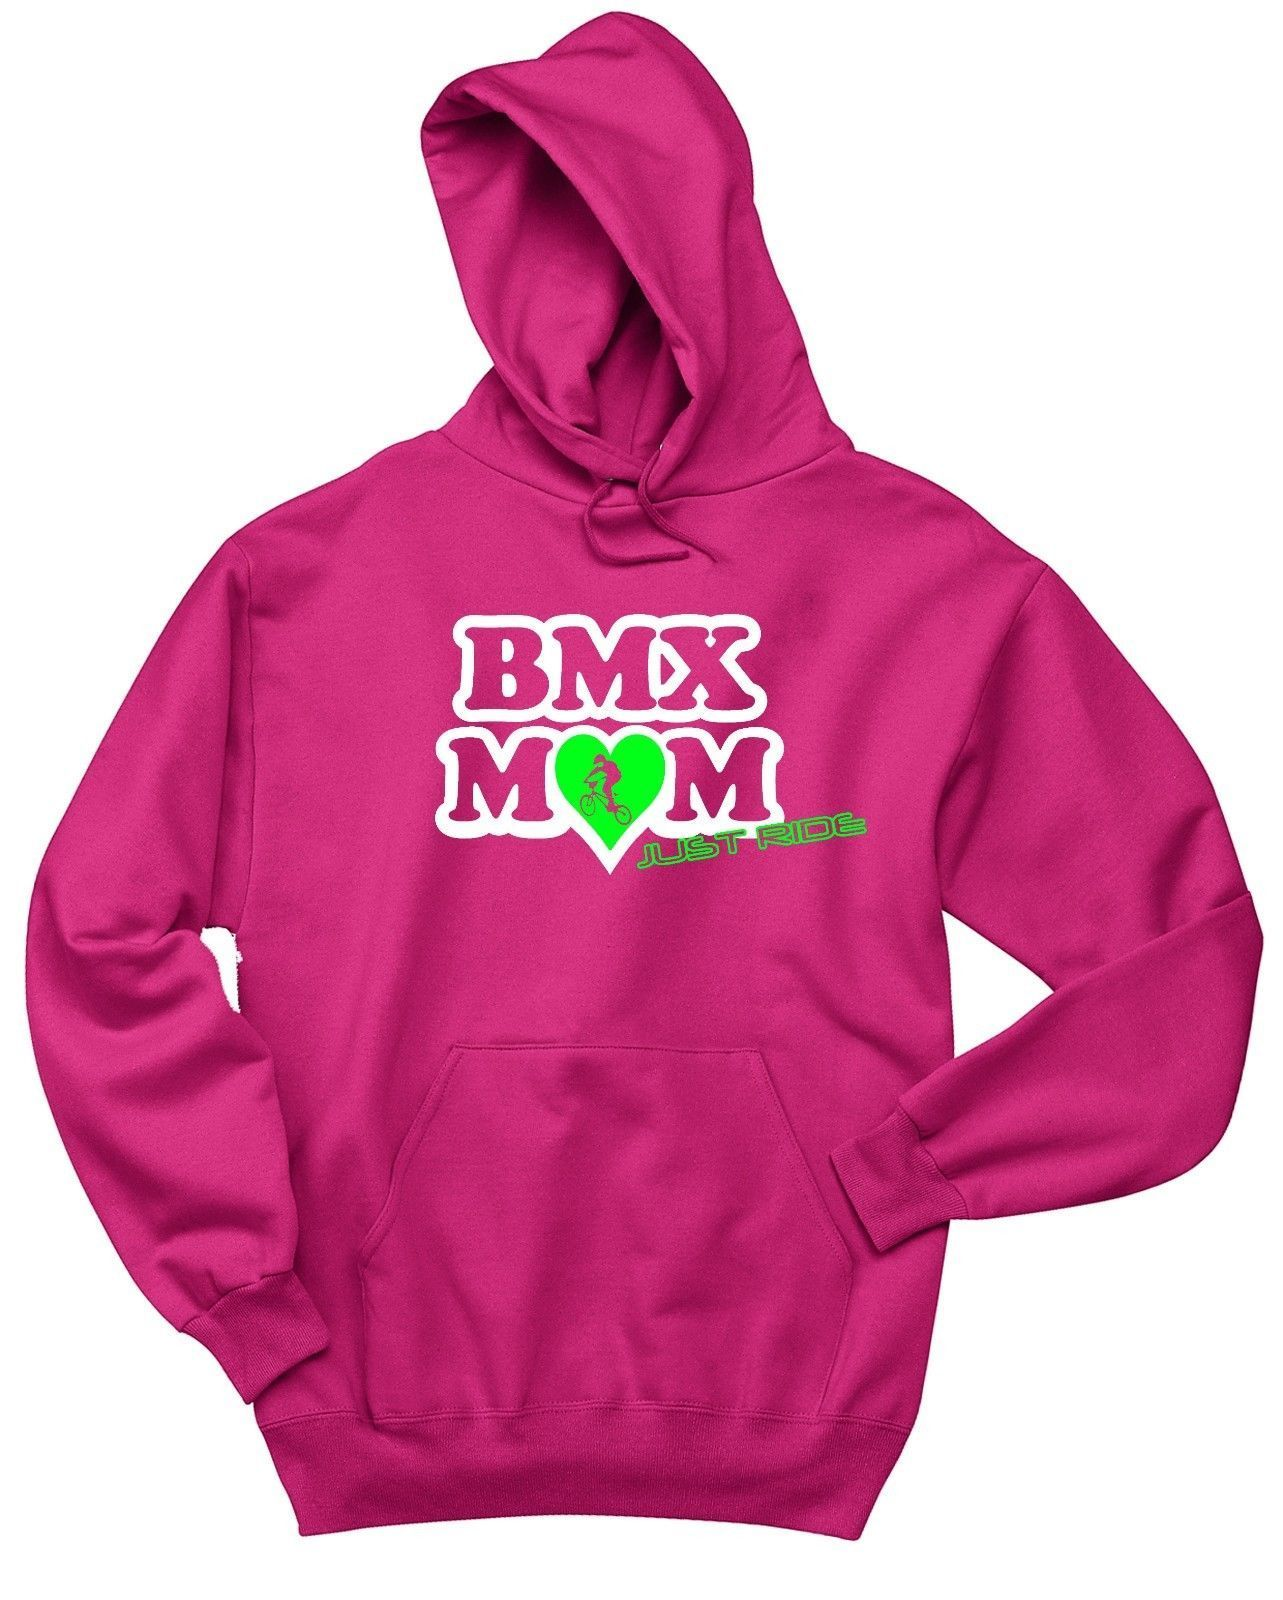 BMX MOM HOODIE SWEAT SHIRT JUST RIDE JUMPER BIKE BICYCLE RACE KINK MUM